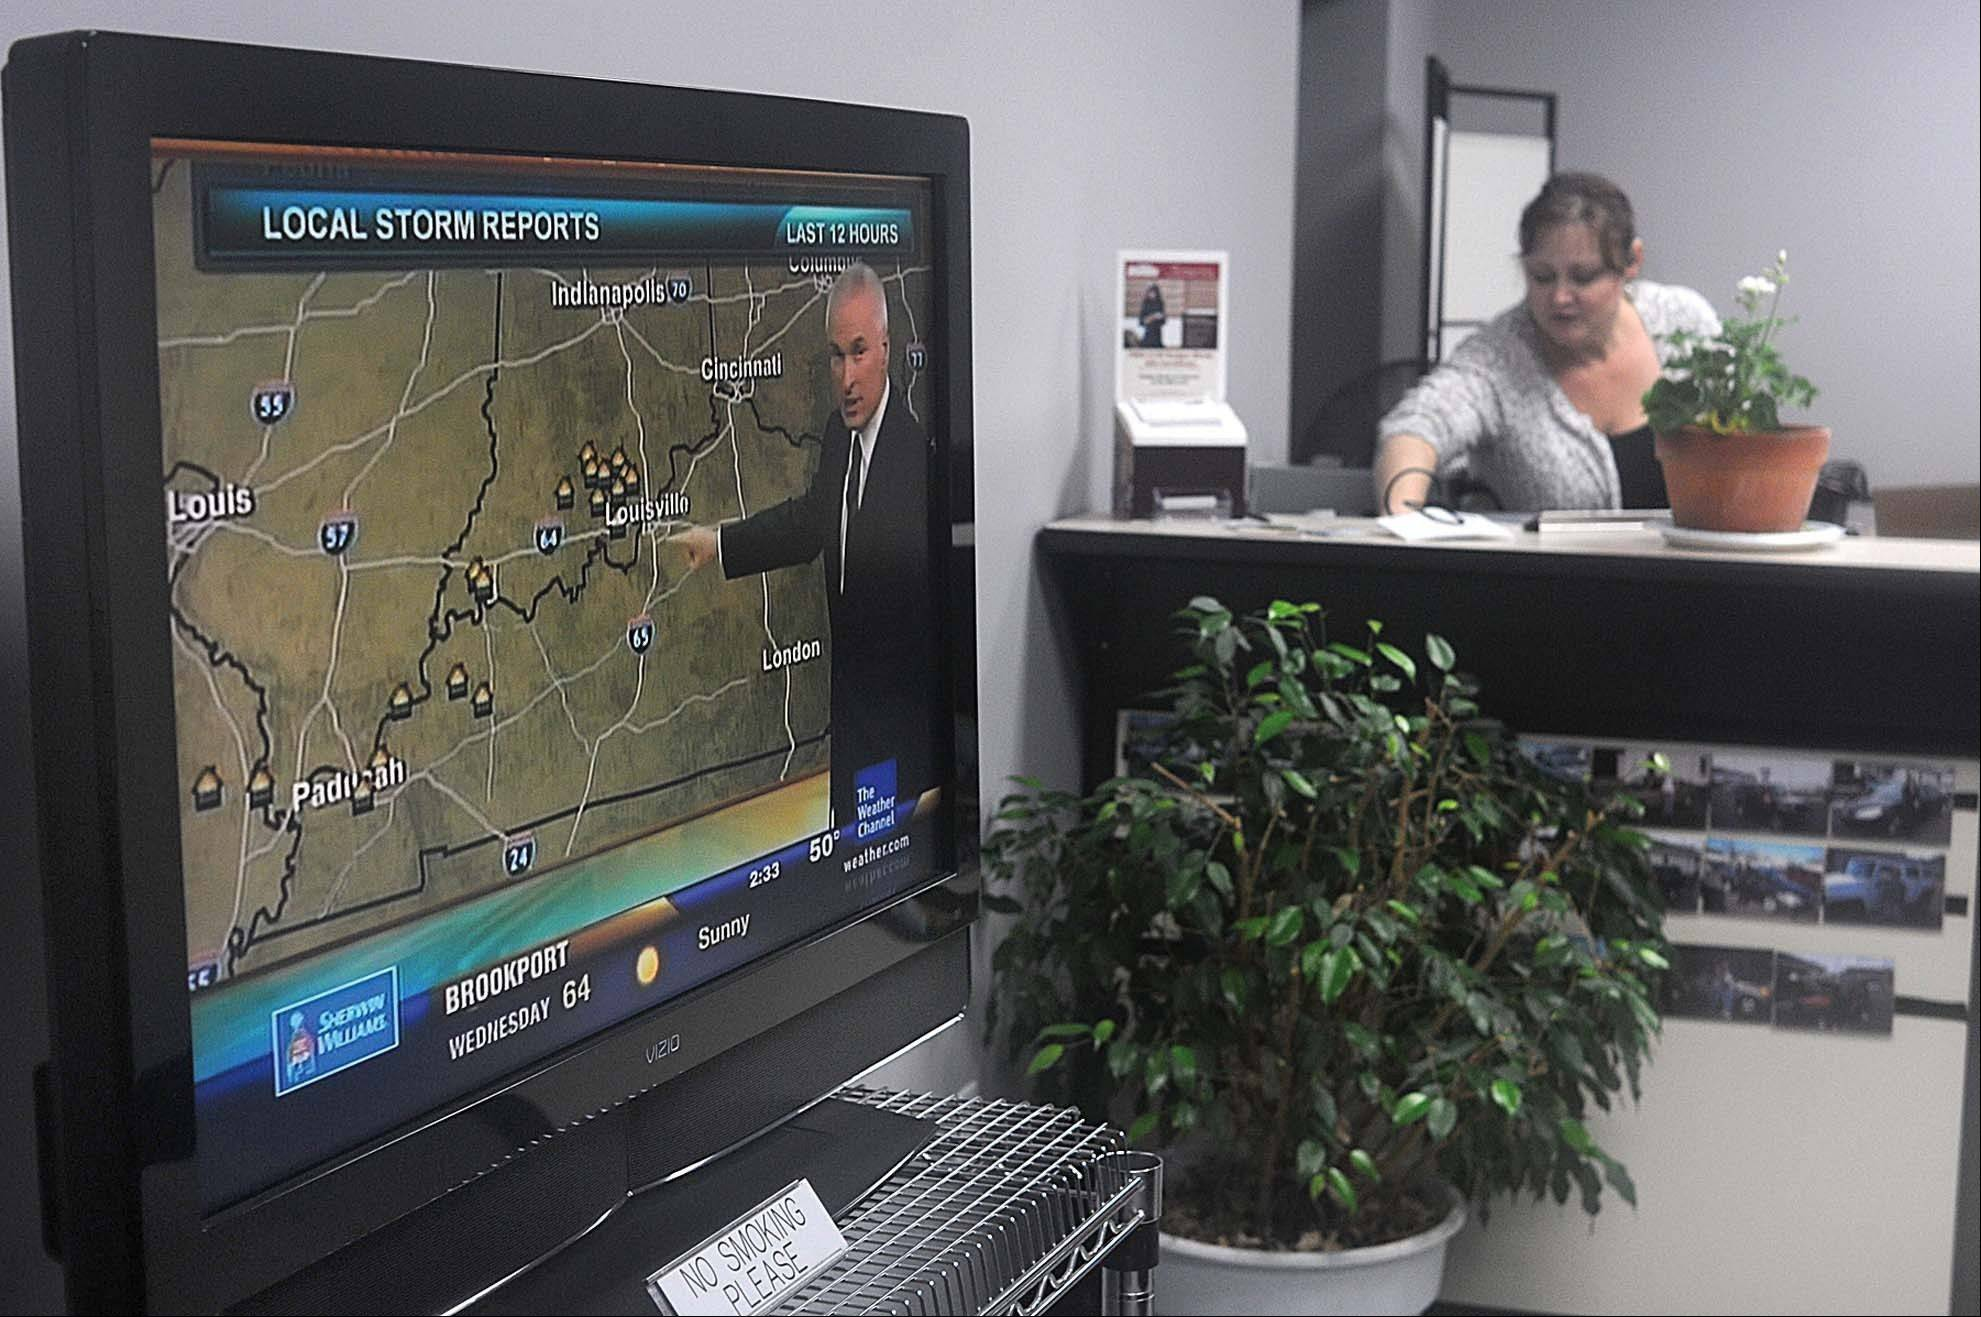 As part of a redesign that debuted last week, Weather Channel viewers will be able to see their local forecasts on-screen whenever they tune in, even during commercials.